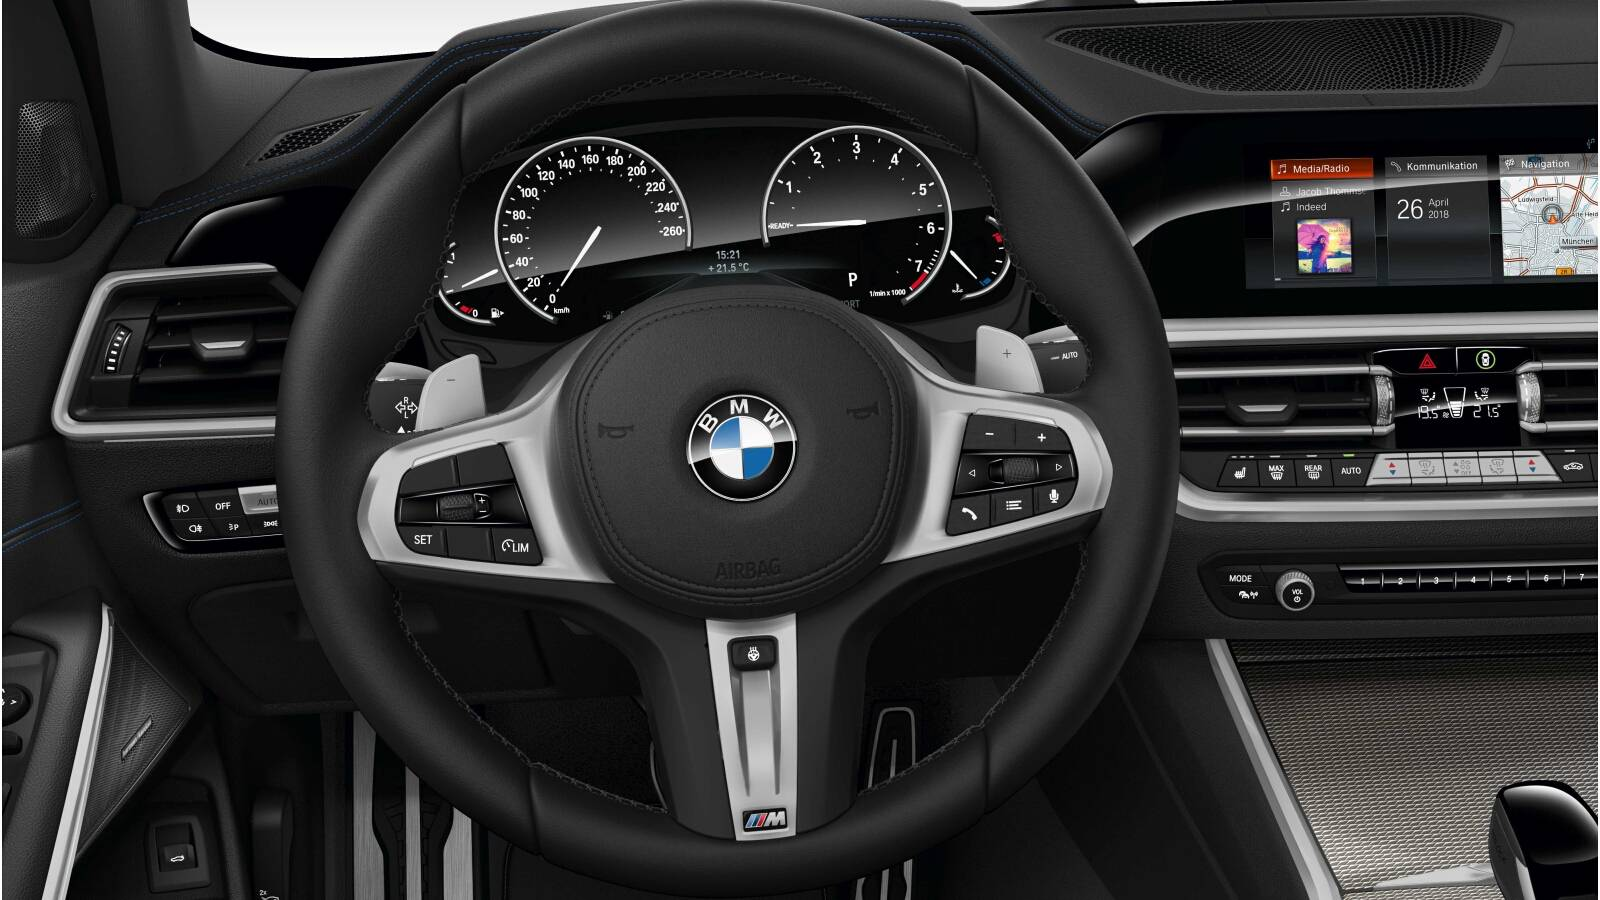 699a672e 2019 Bmw 3 Series Interior 1 Madame Lefo